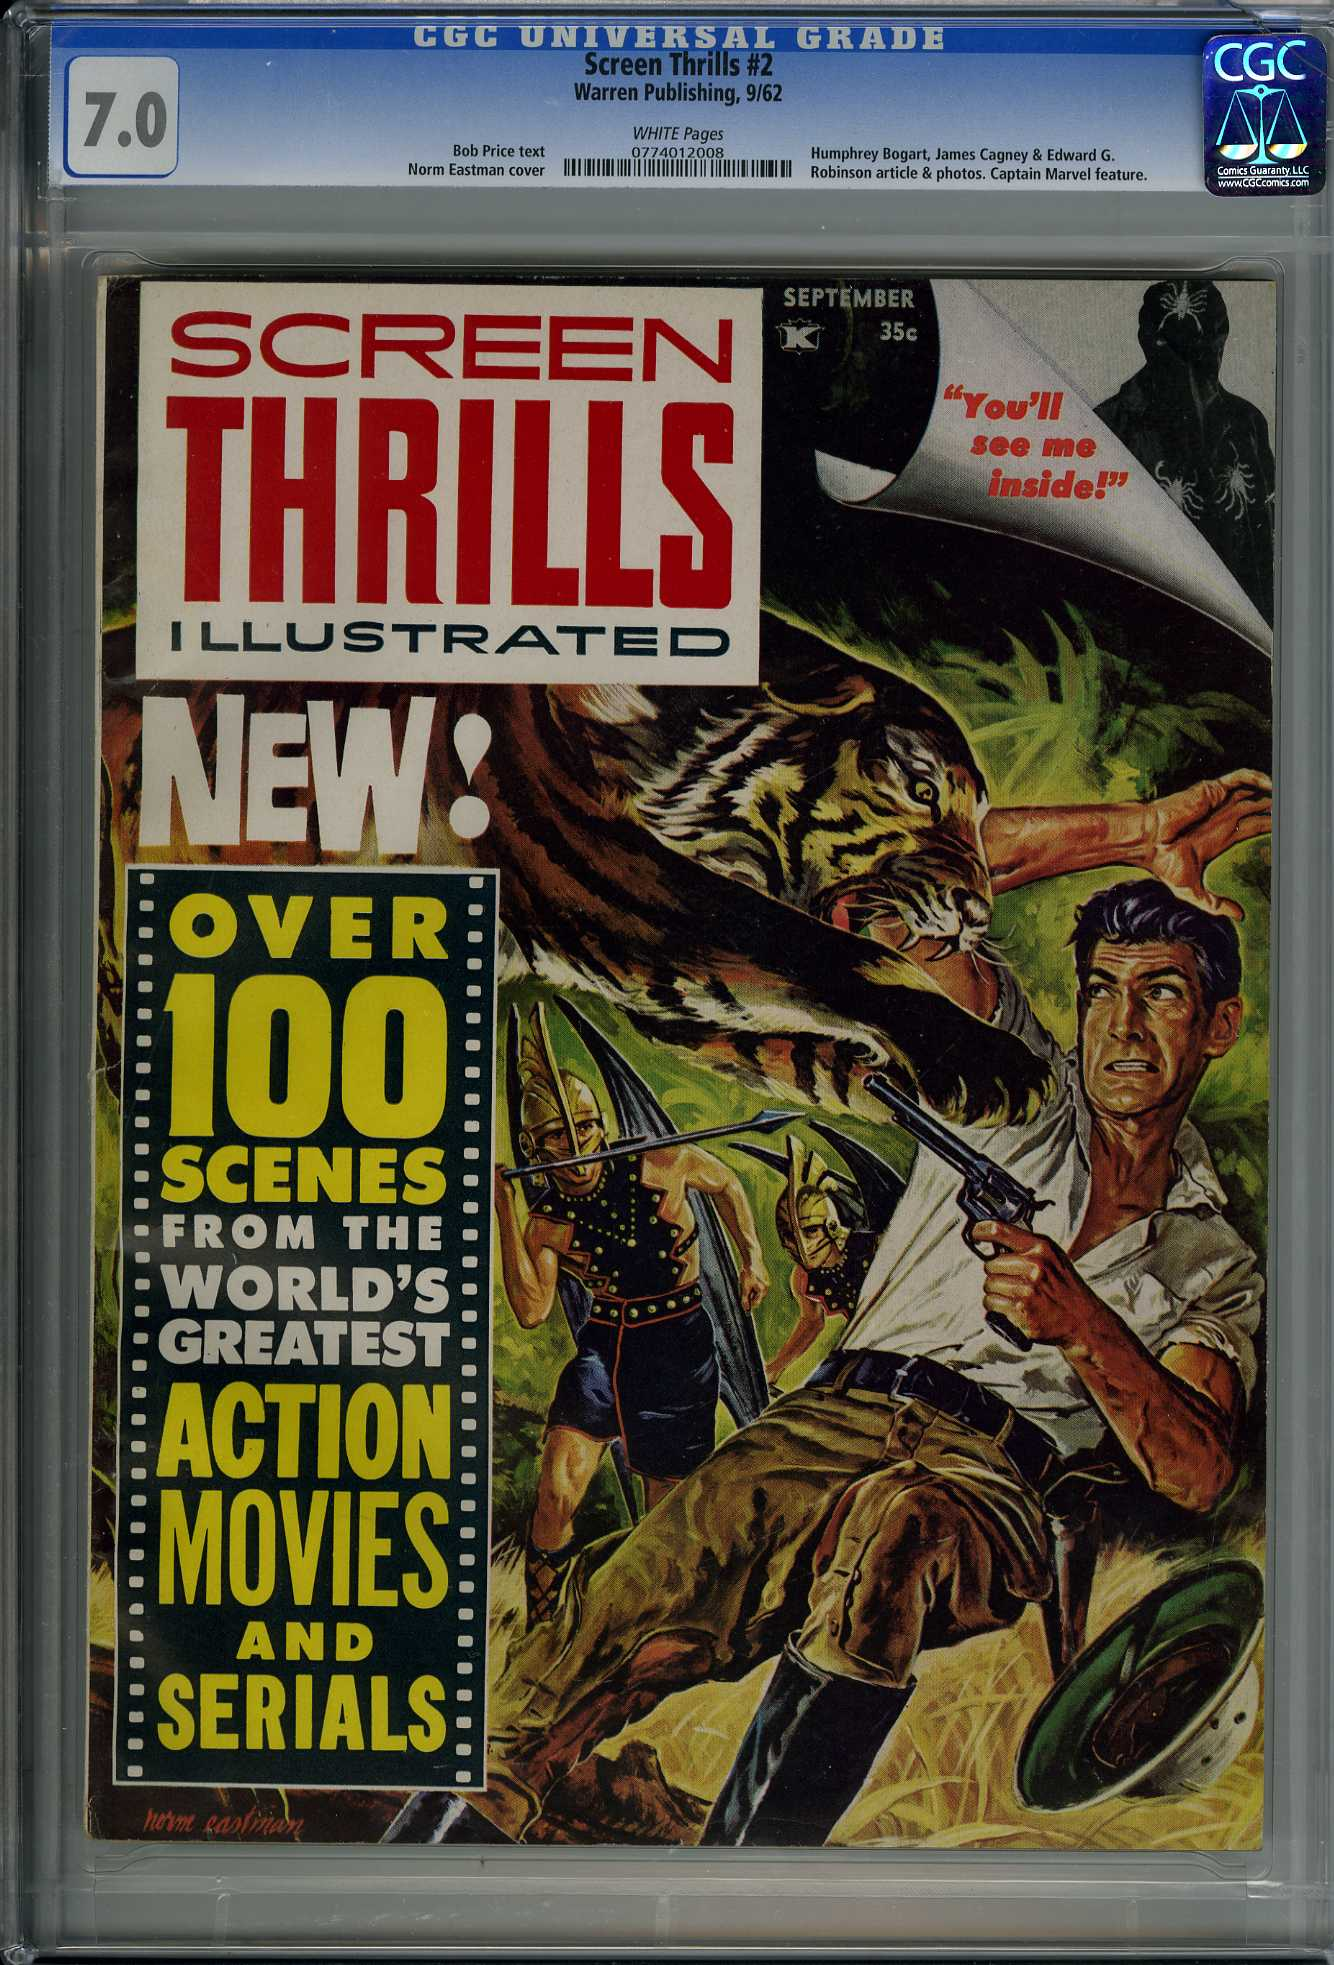 SCREEN THRILLS #2 (1962) CGC FN/VF 7.0 WHITE Pages - CAPTAIN MARVEL Feature